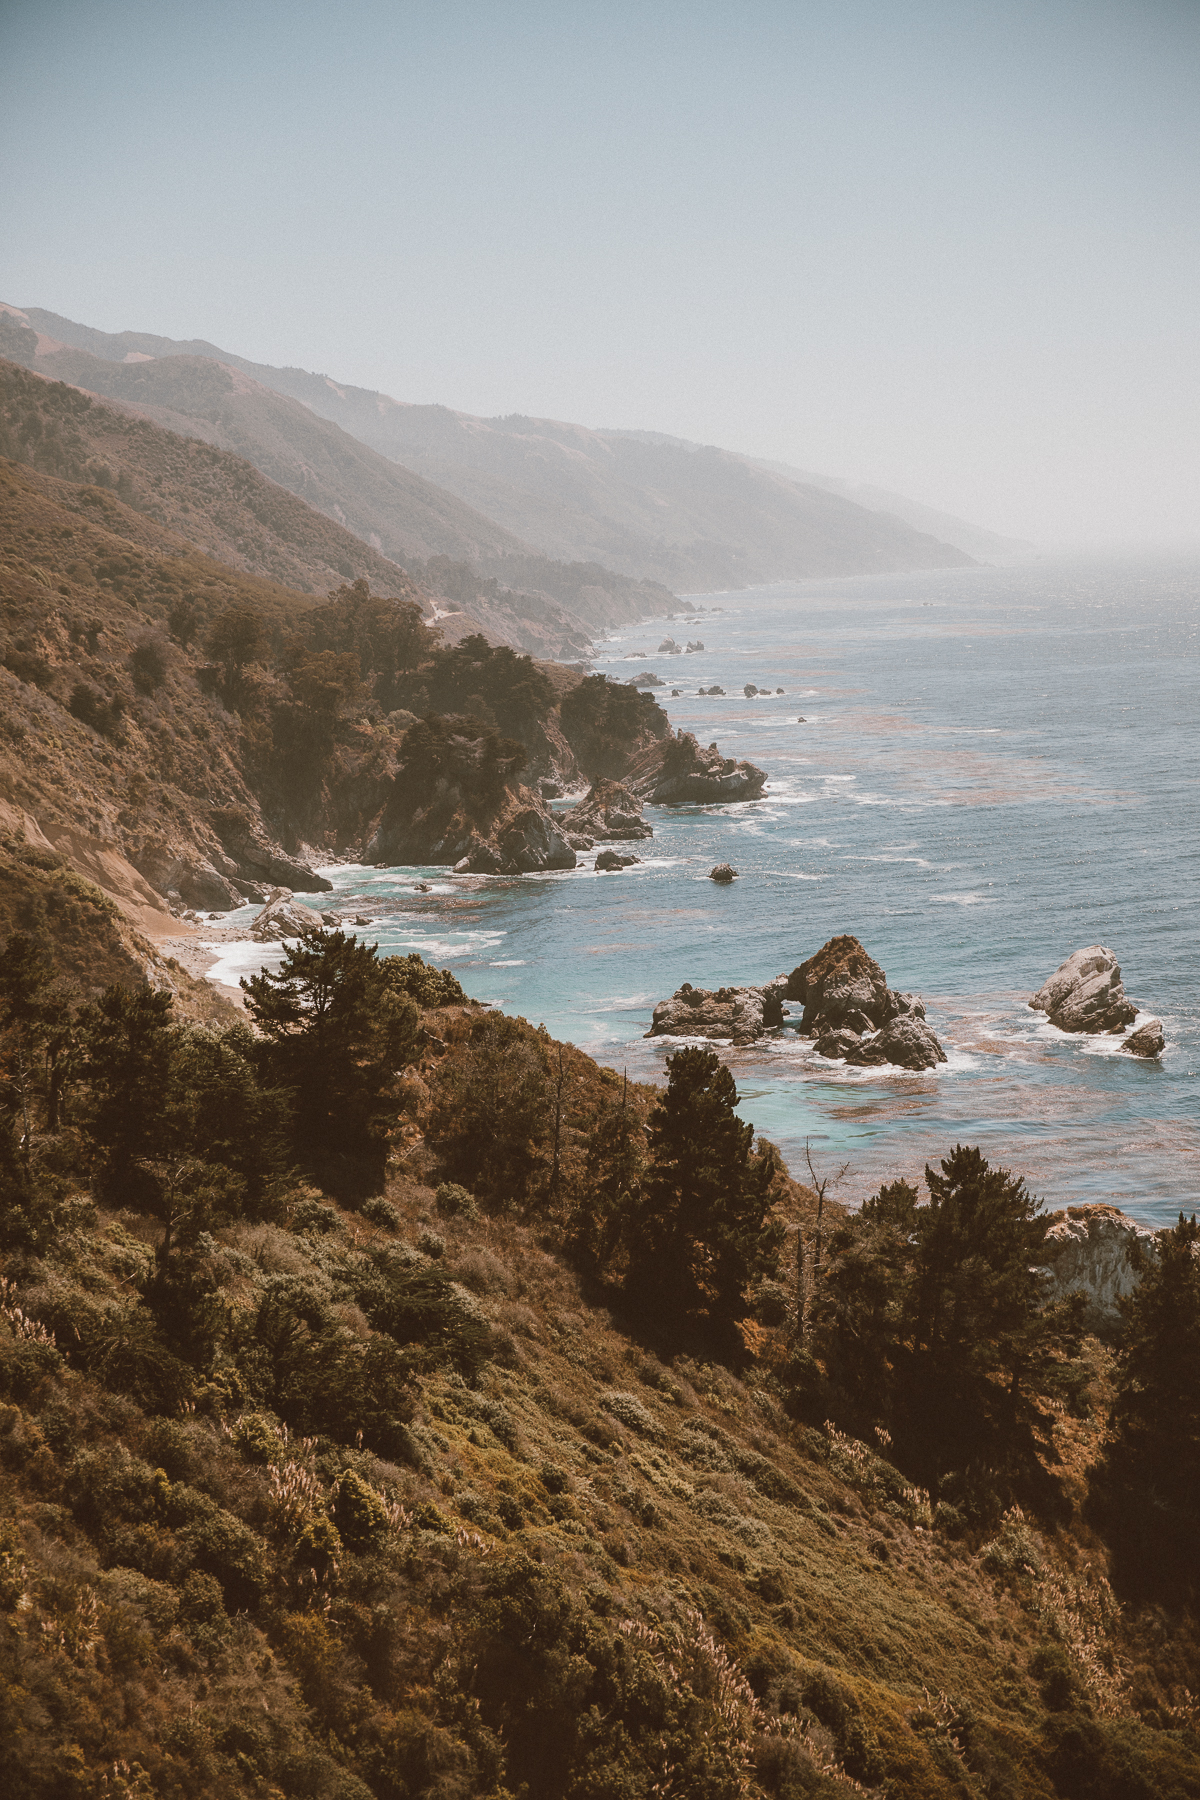 California Big Sur Road trip by photographer Ailera Stone